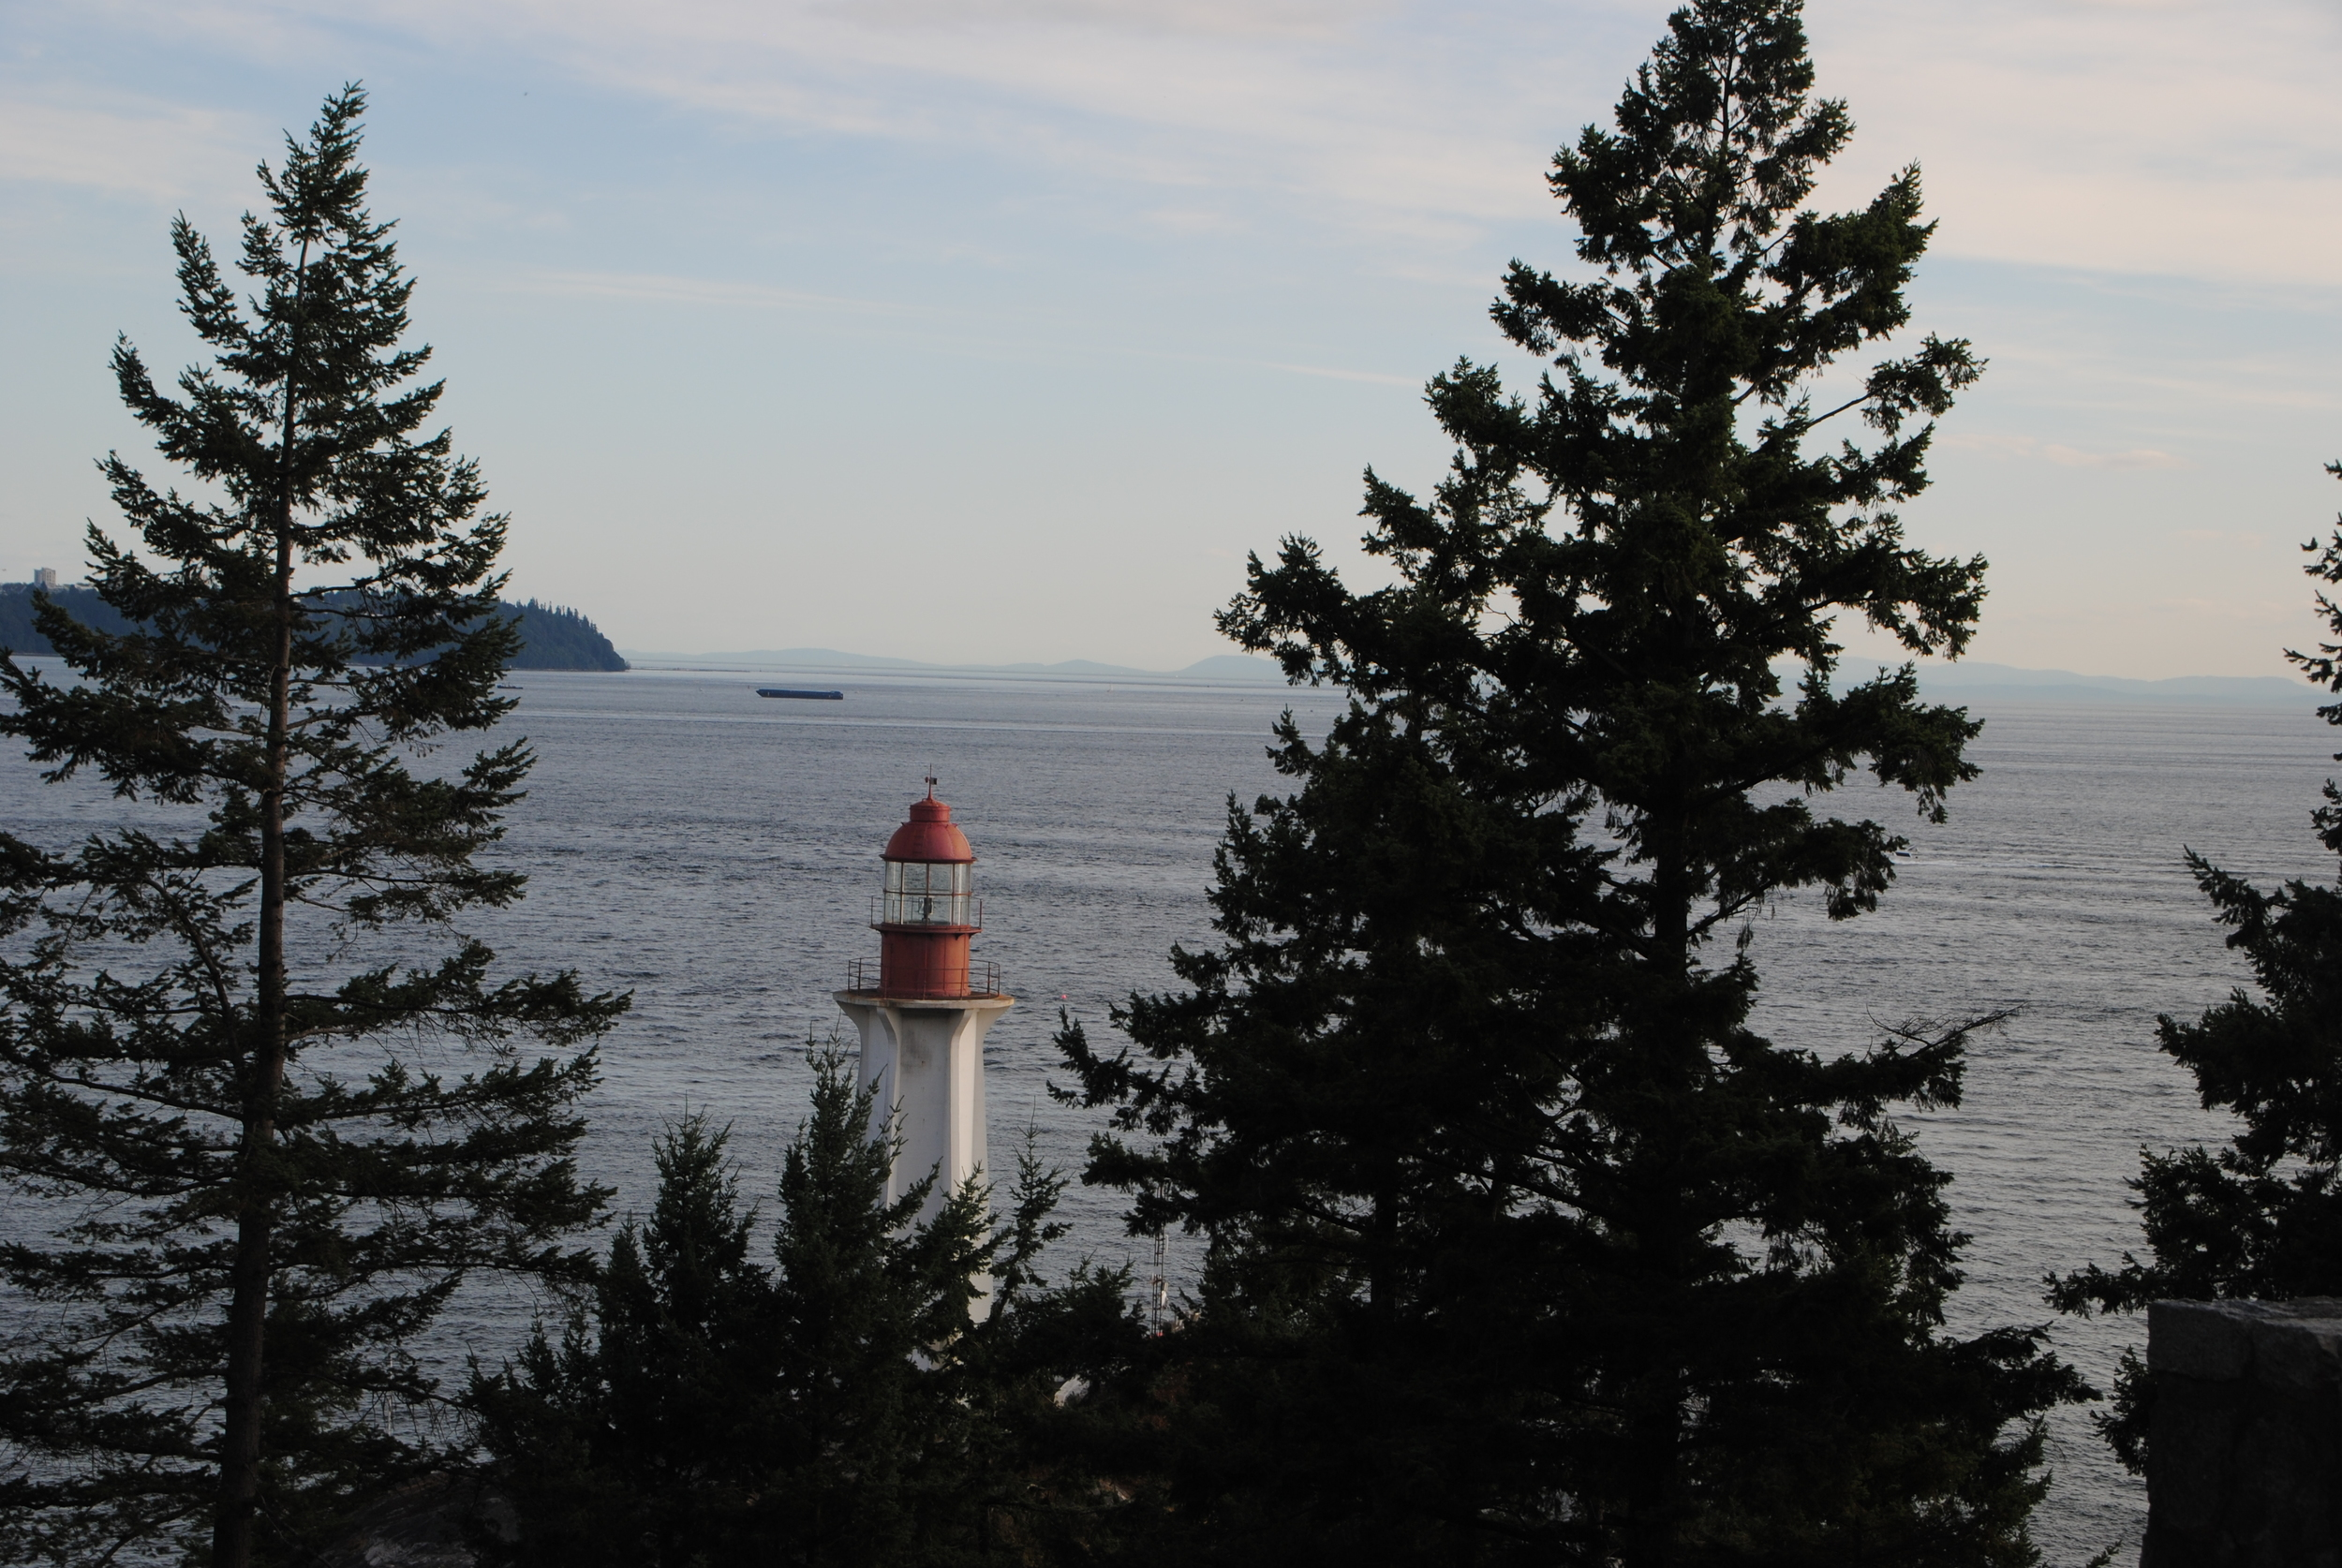 The lighthouse at Lighthouse Park.